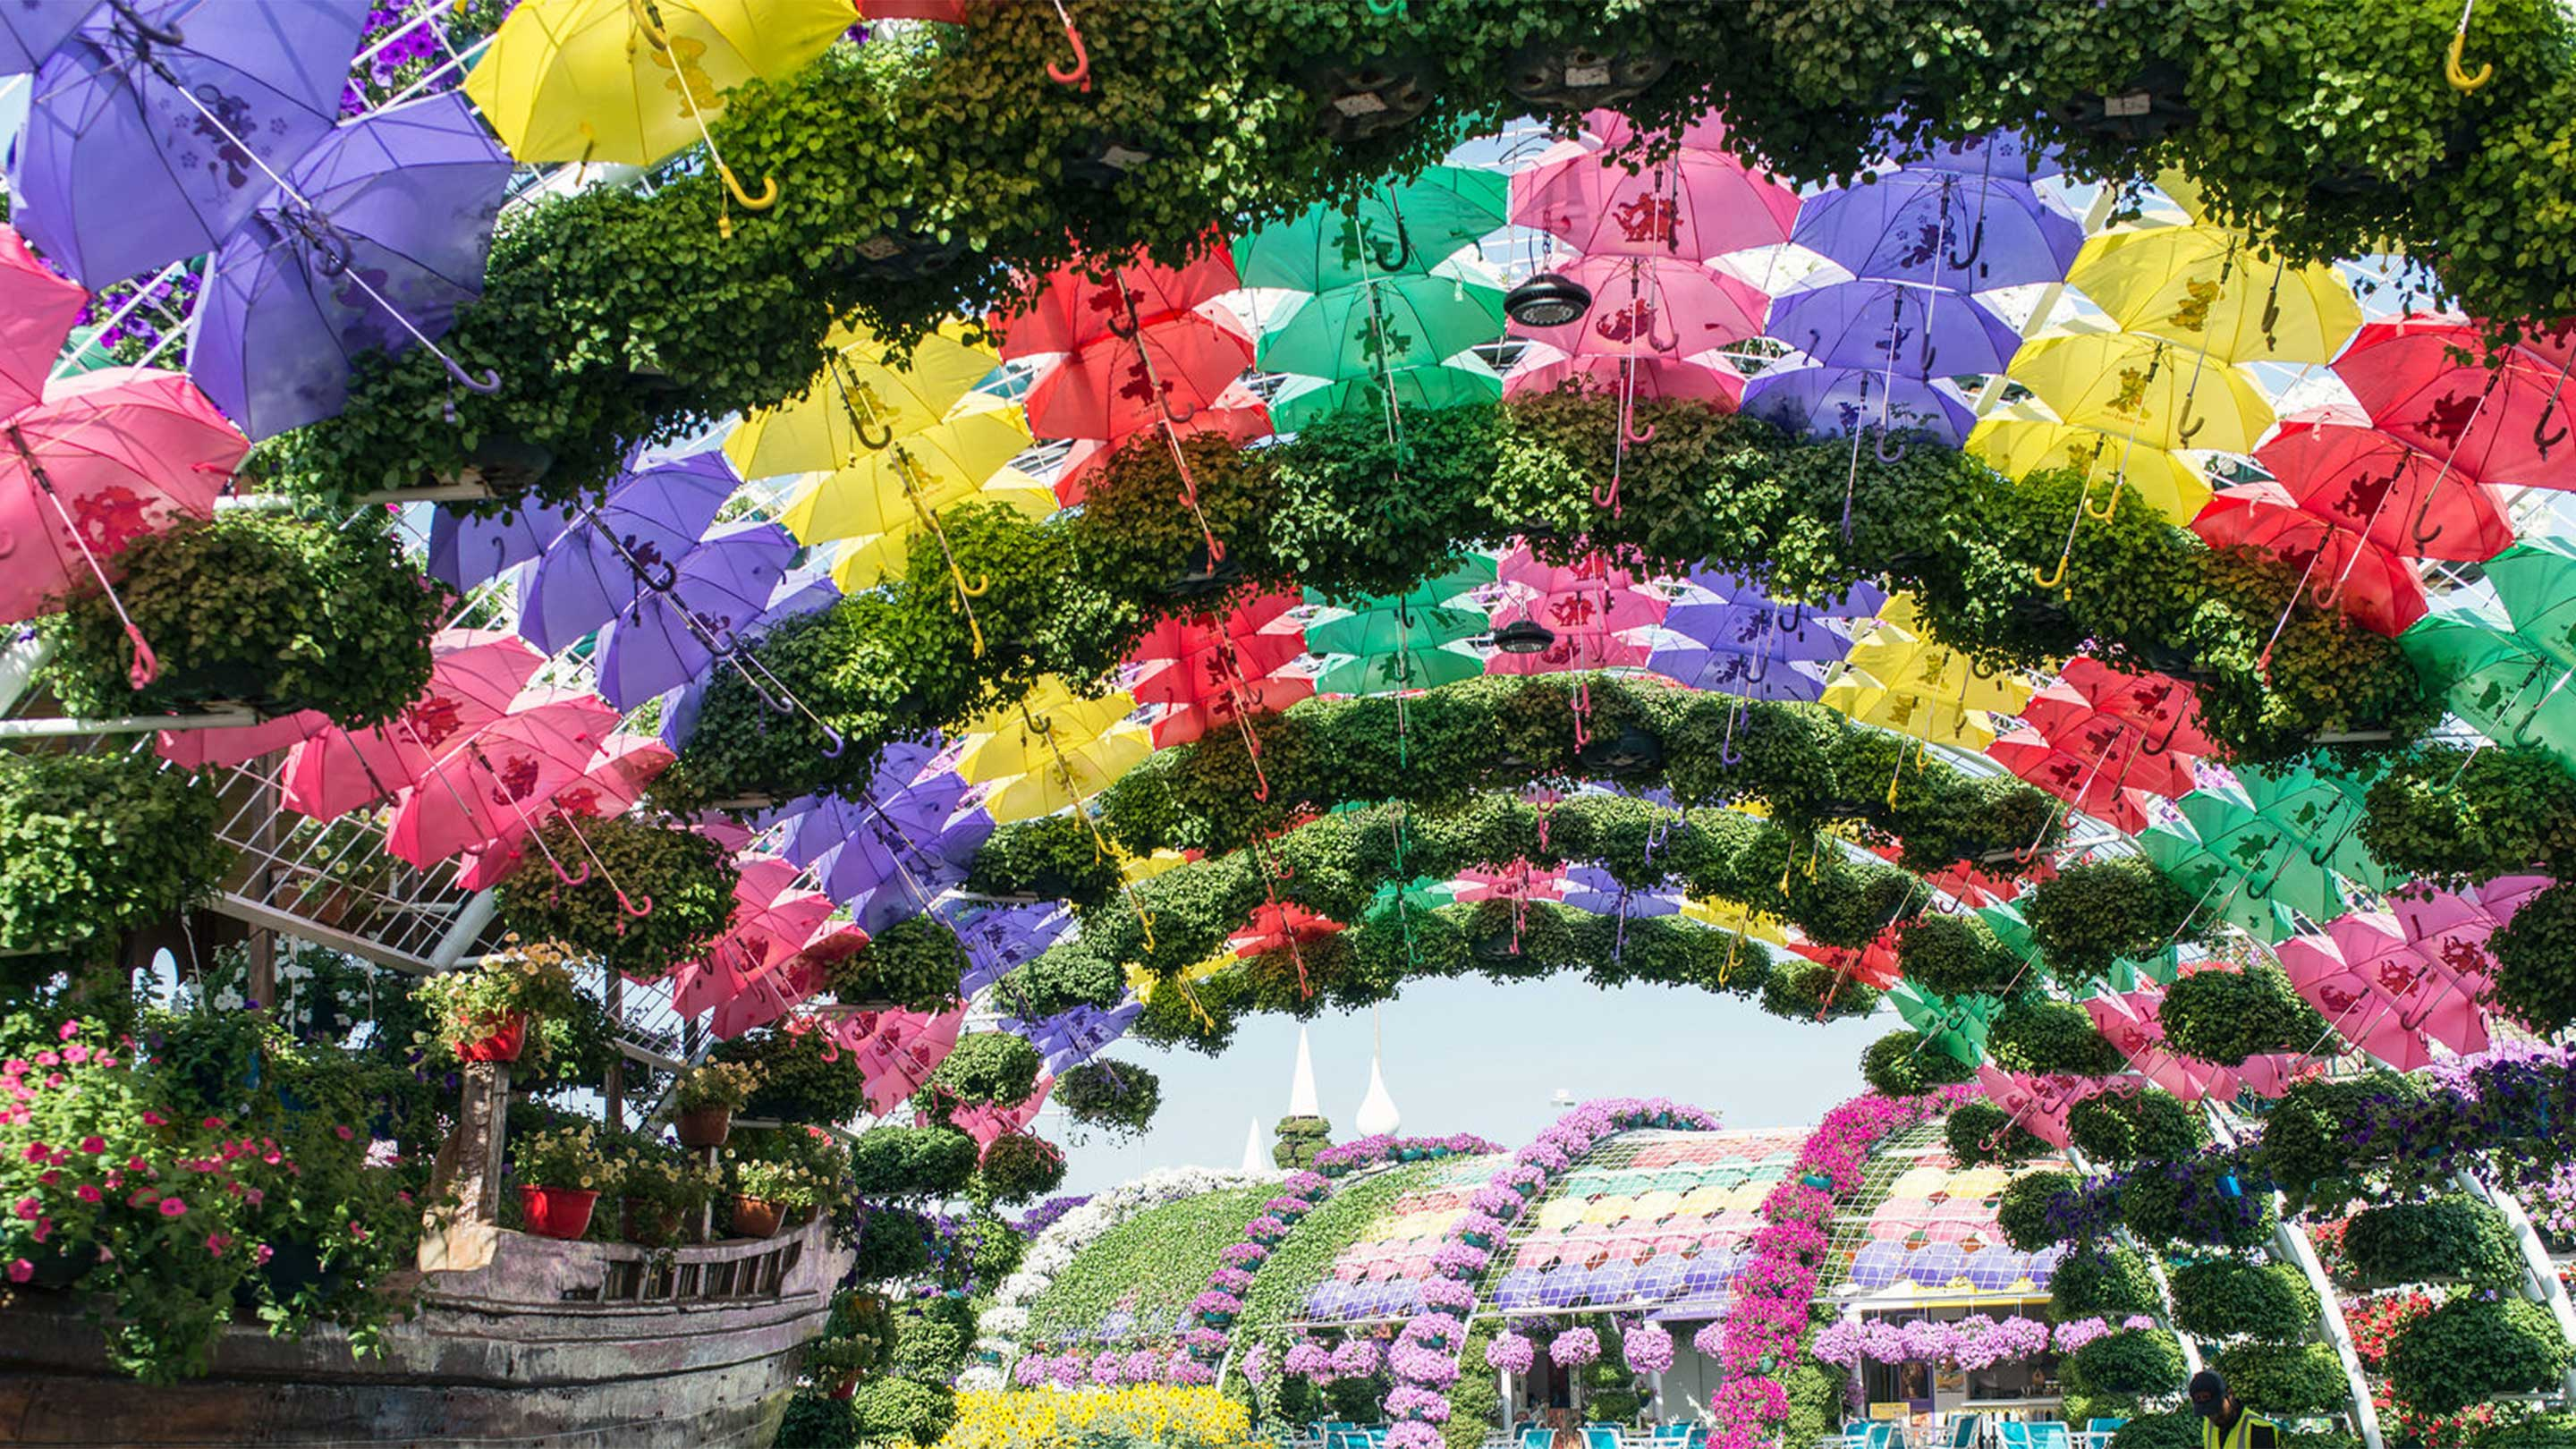 16 9 Photo Copy of Dubai Miracle Garden